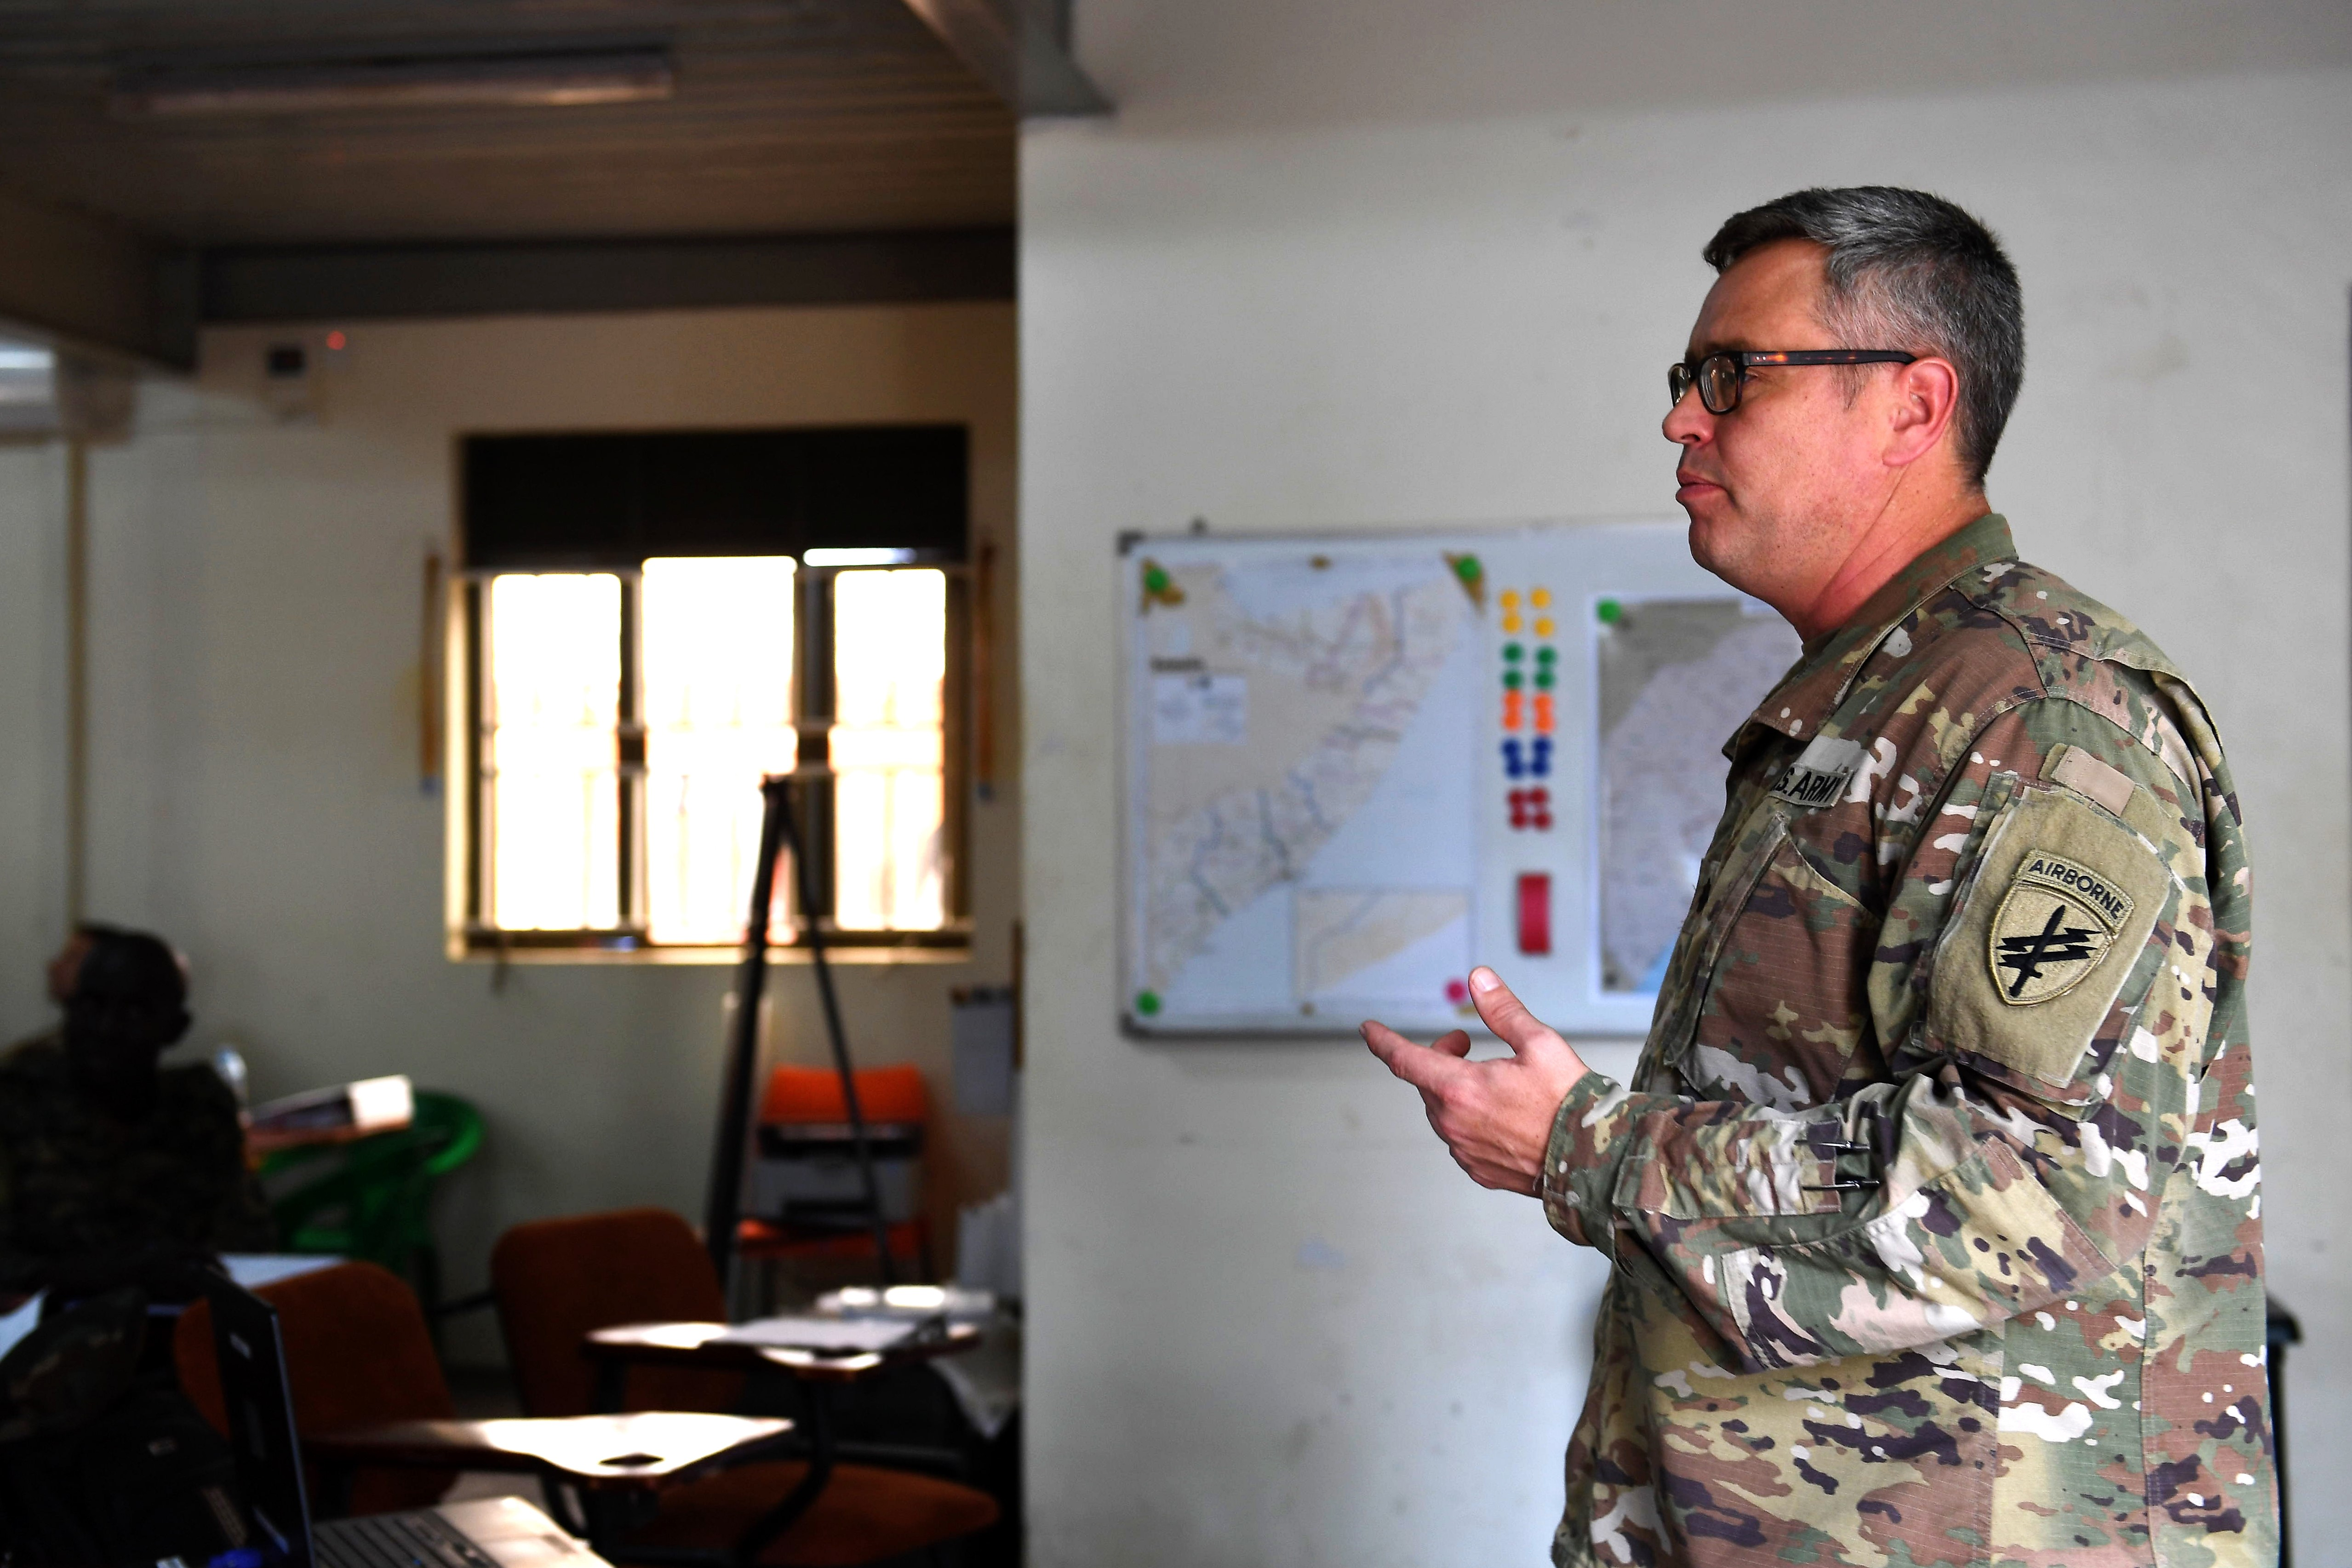 U.S. Army U.S. Army Lt. Col. Stefan Adamcik, 404th Civil Affairs Battalion Commander, briefs  Uganda Peoples' Defence Force (UPDF) Soldiers on the Civil Affairs mission, Entebee, Uganda,  July 10, 2018. The UDPF is participating in training designed to enhance their capability and capacity in support of the African Union Mission in Somalia. The 404th Civil Affairs Battalion, Airborne, based at Joint Base McGuire-Dix-Lakehurst, New Jersey, is currently deployed to  Combined Joint Task force-Horn of Africa, Djibouti.  (U.S. Air Force photo by Senior Airman Haley D. Phillips)